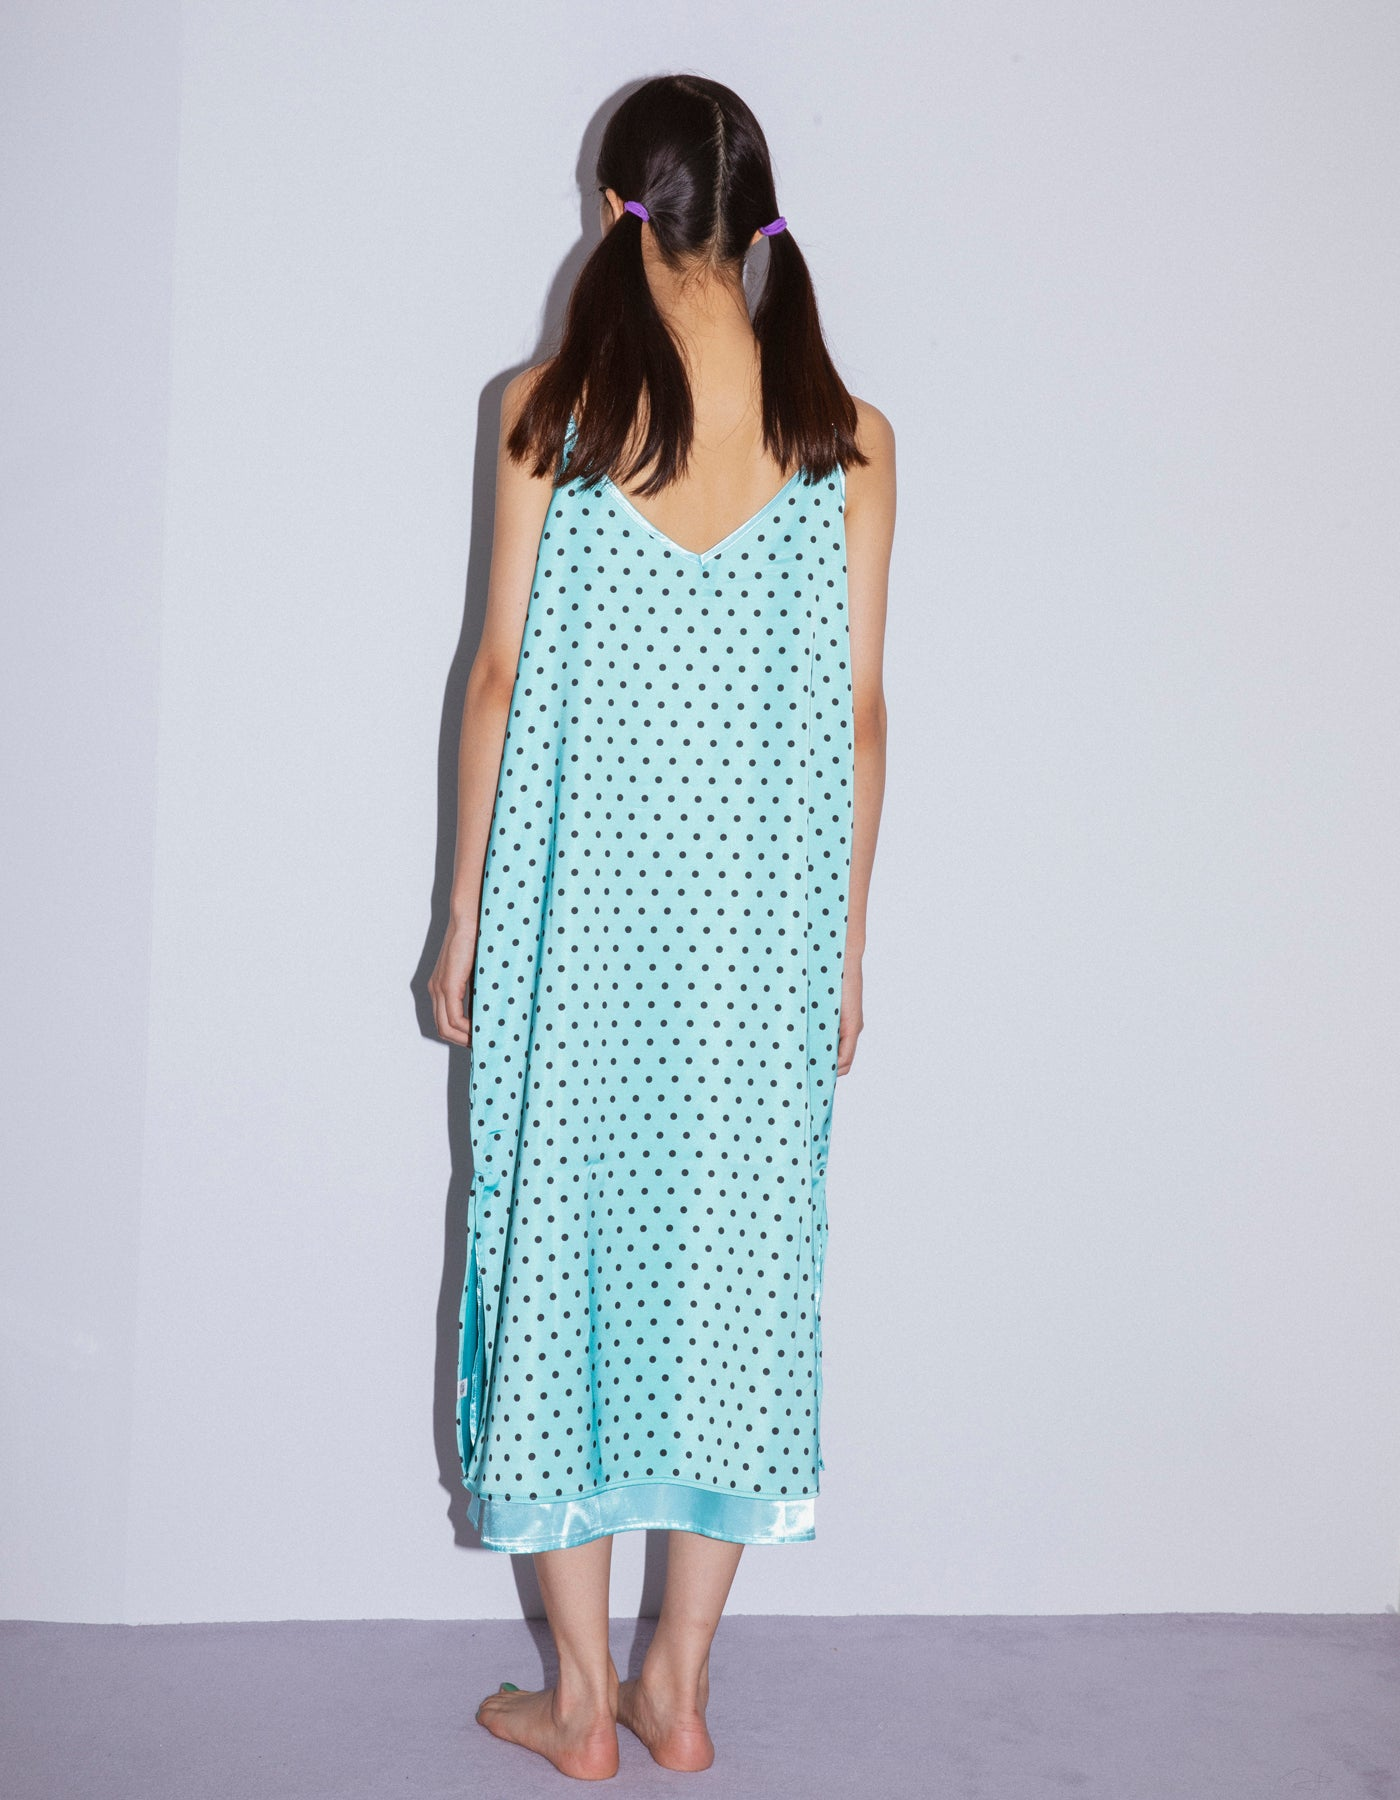 Dot satin dress / BLUE